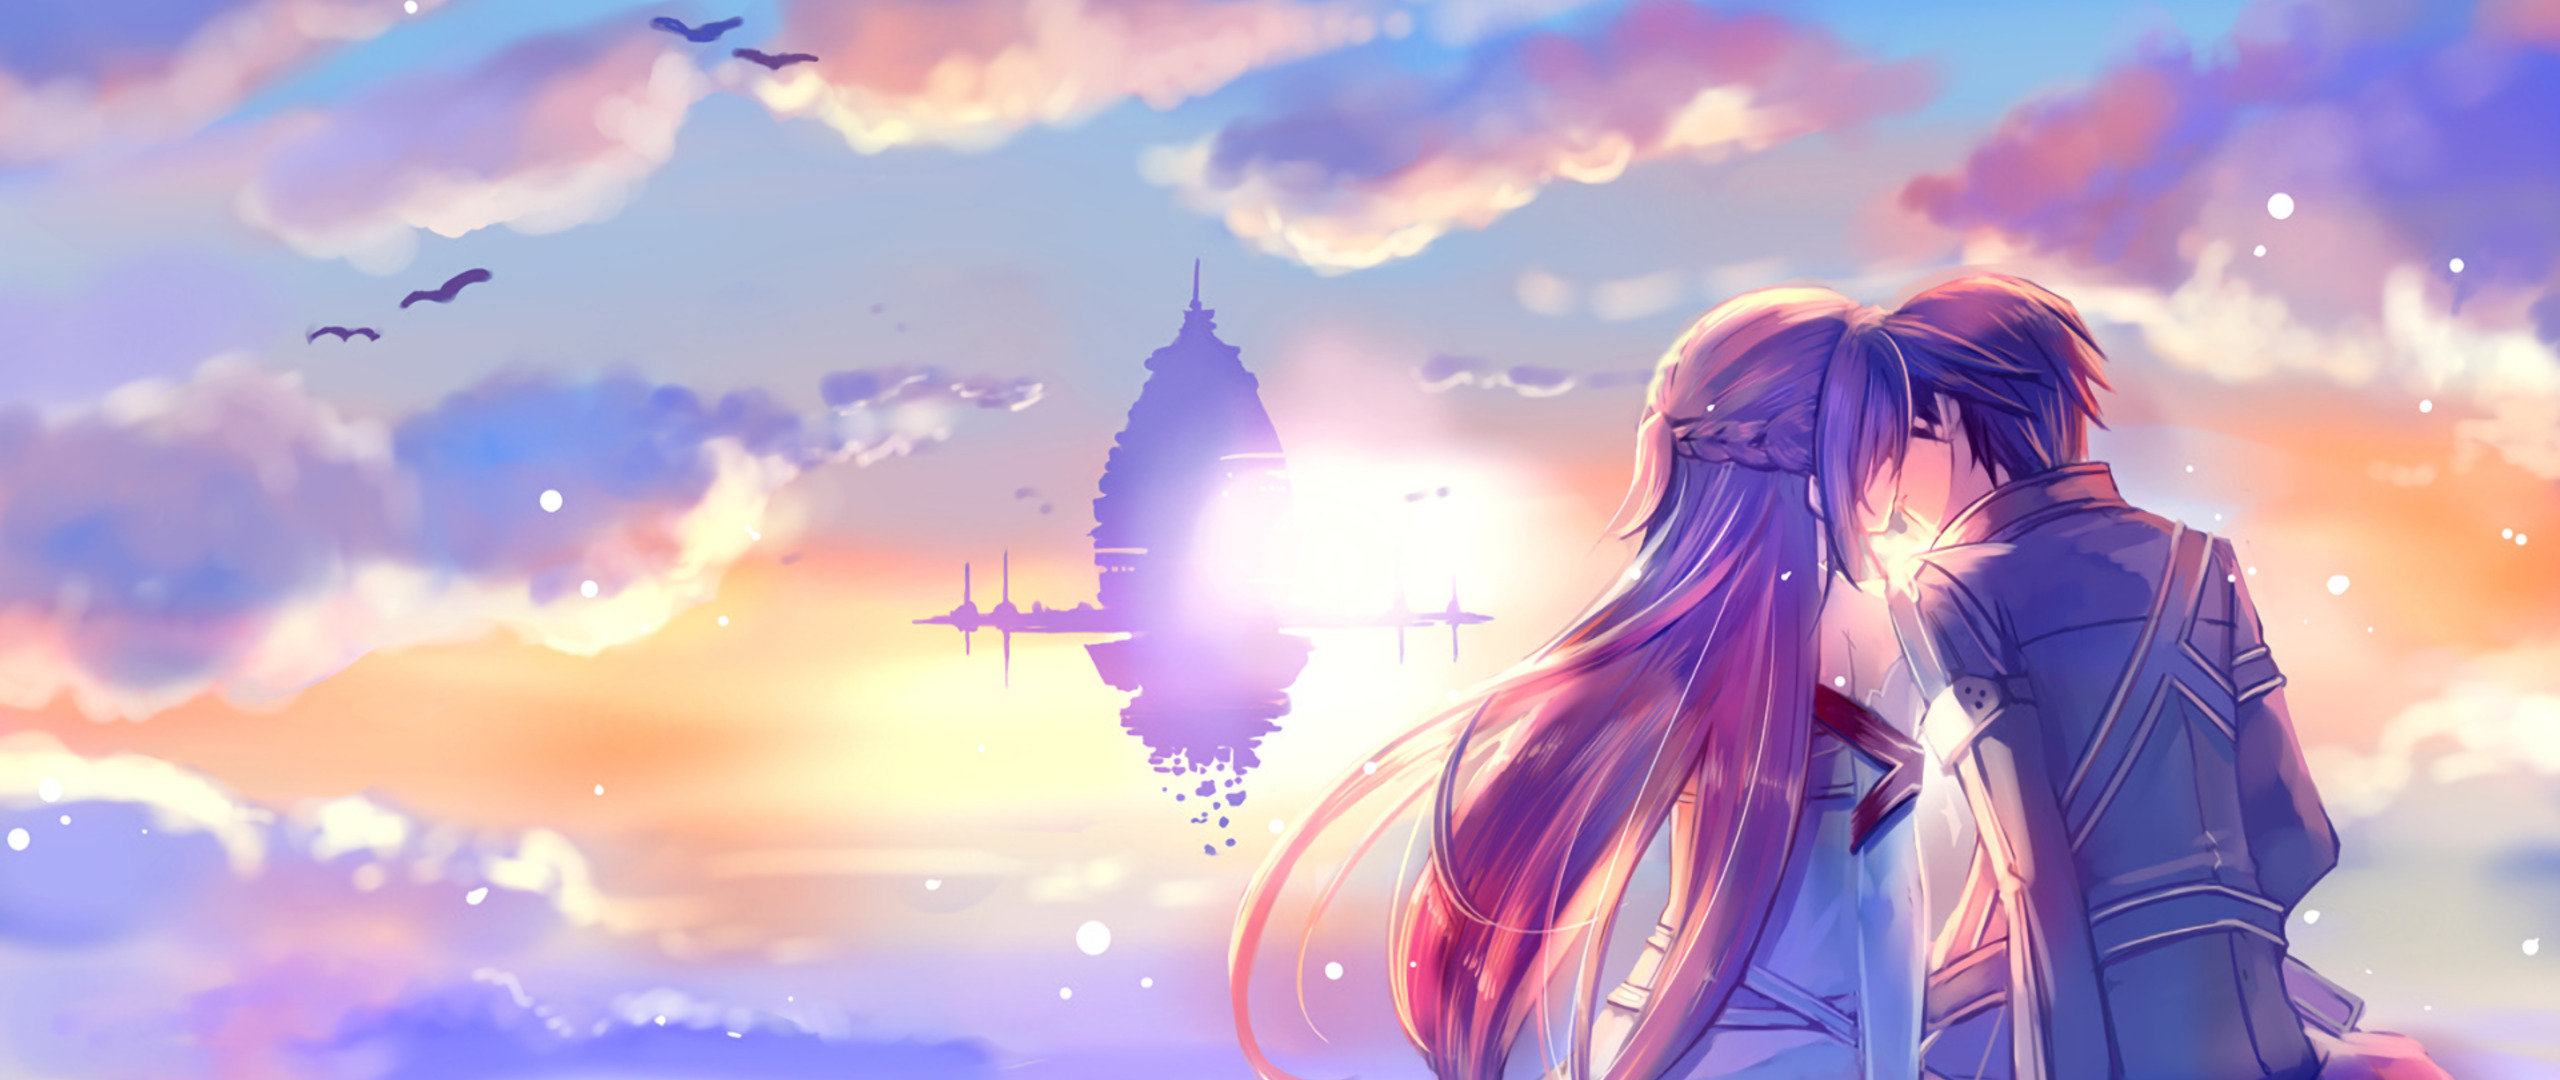 Check out this fantastic collection of full screen anime wallpapers, with 54 full screen anime background images for your desktop, phone or tablet. 2560x1080 Anime Sword Art Online 2560x1080 Resolution HD ...